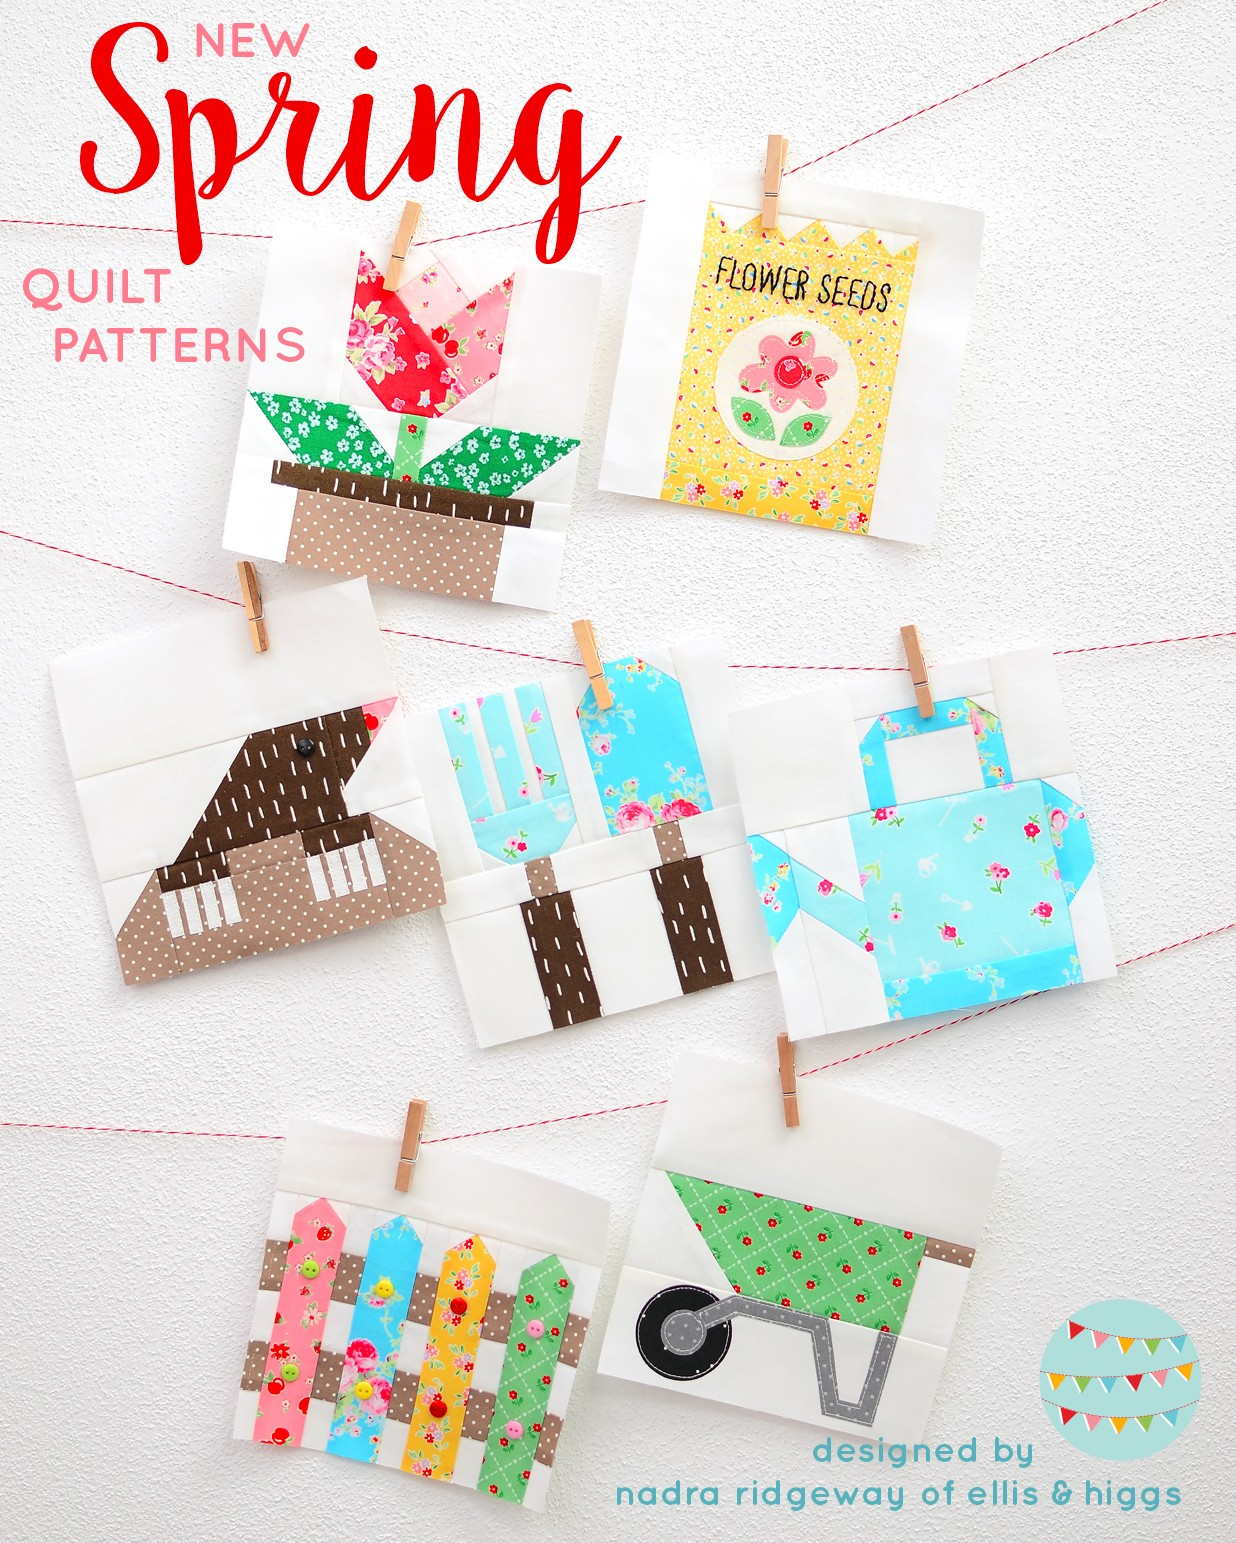 Spring quilt blocks hanging on a wall - Spring Quilt patterns